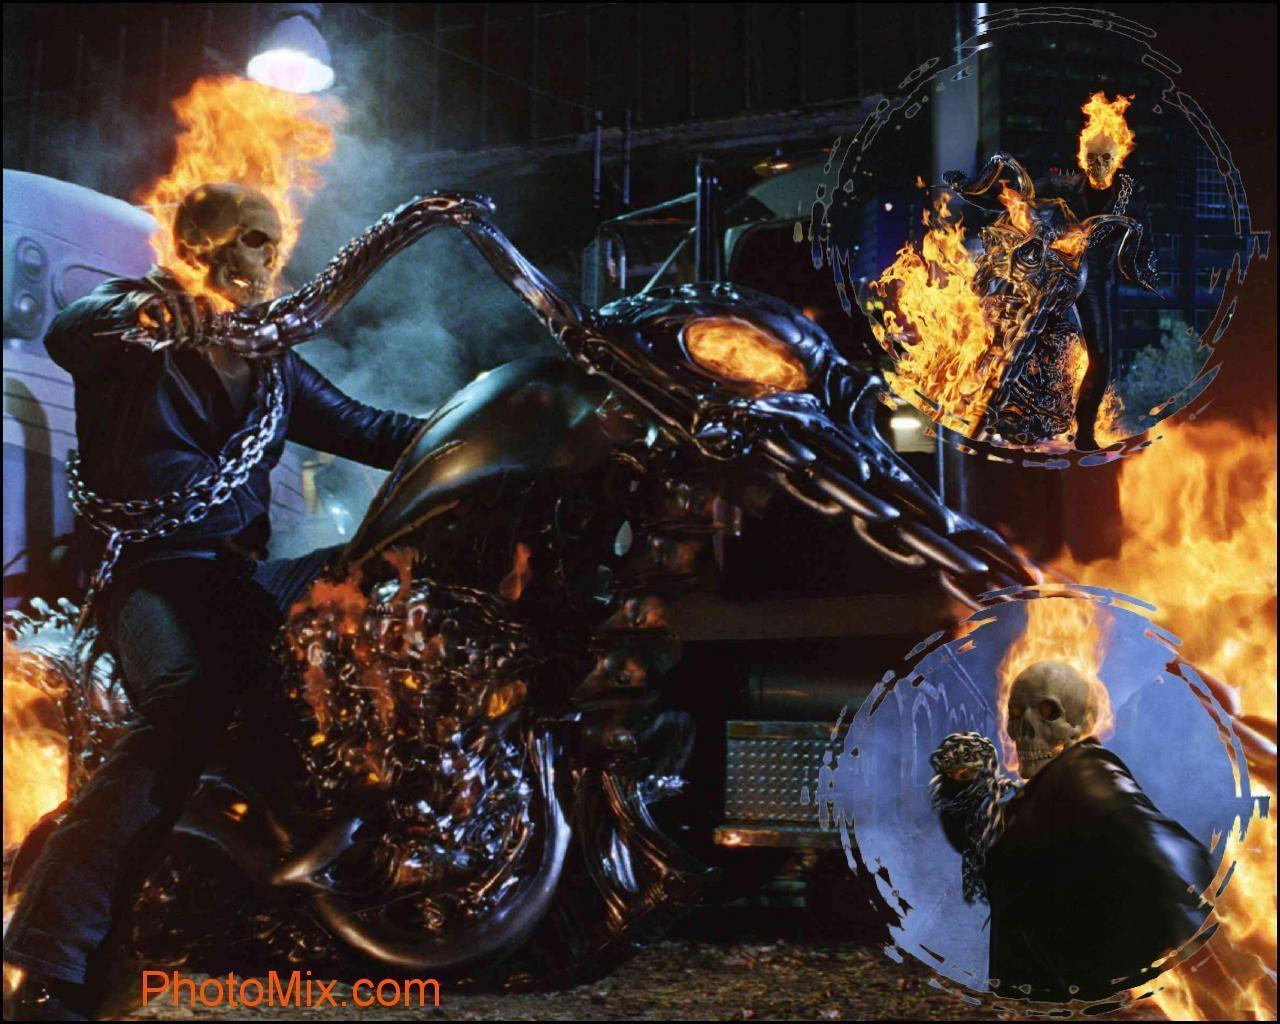 DC Movie Wallpapers » Ghost Rider